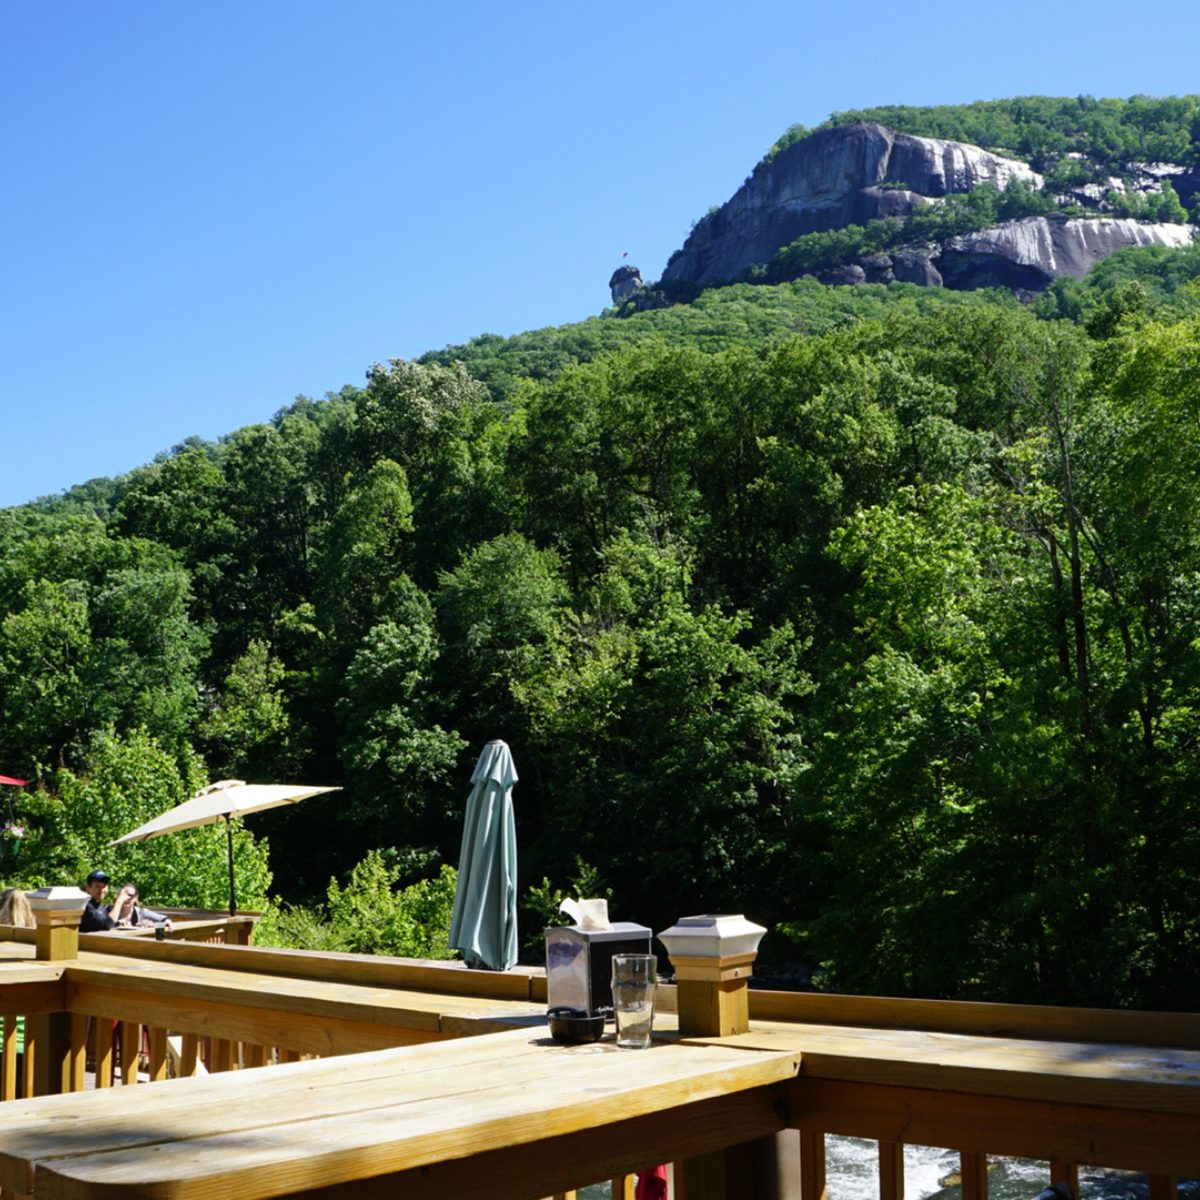 Patio beer garden overlooking a scenic gorge